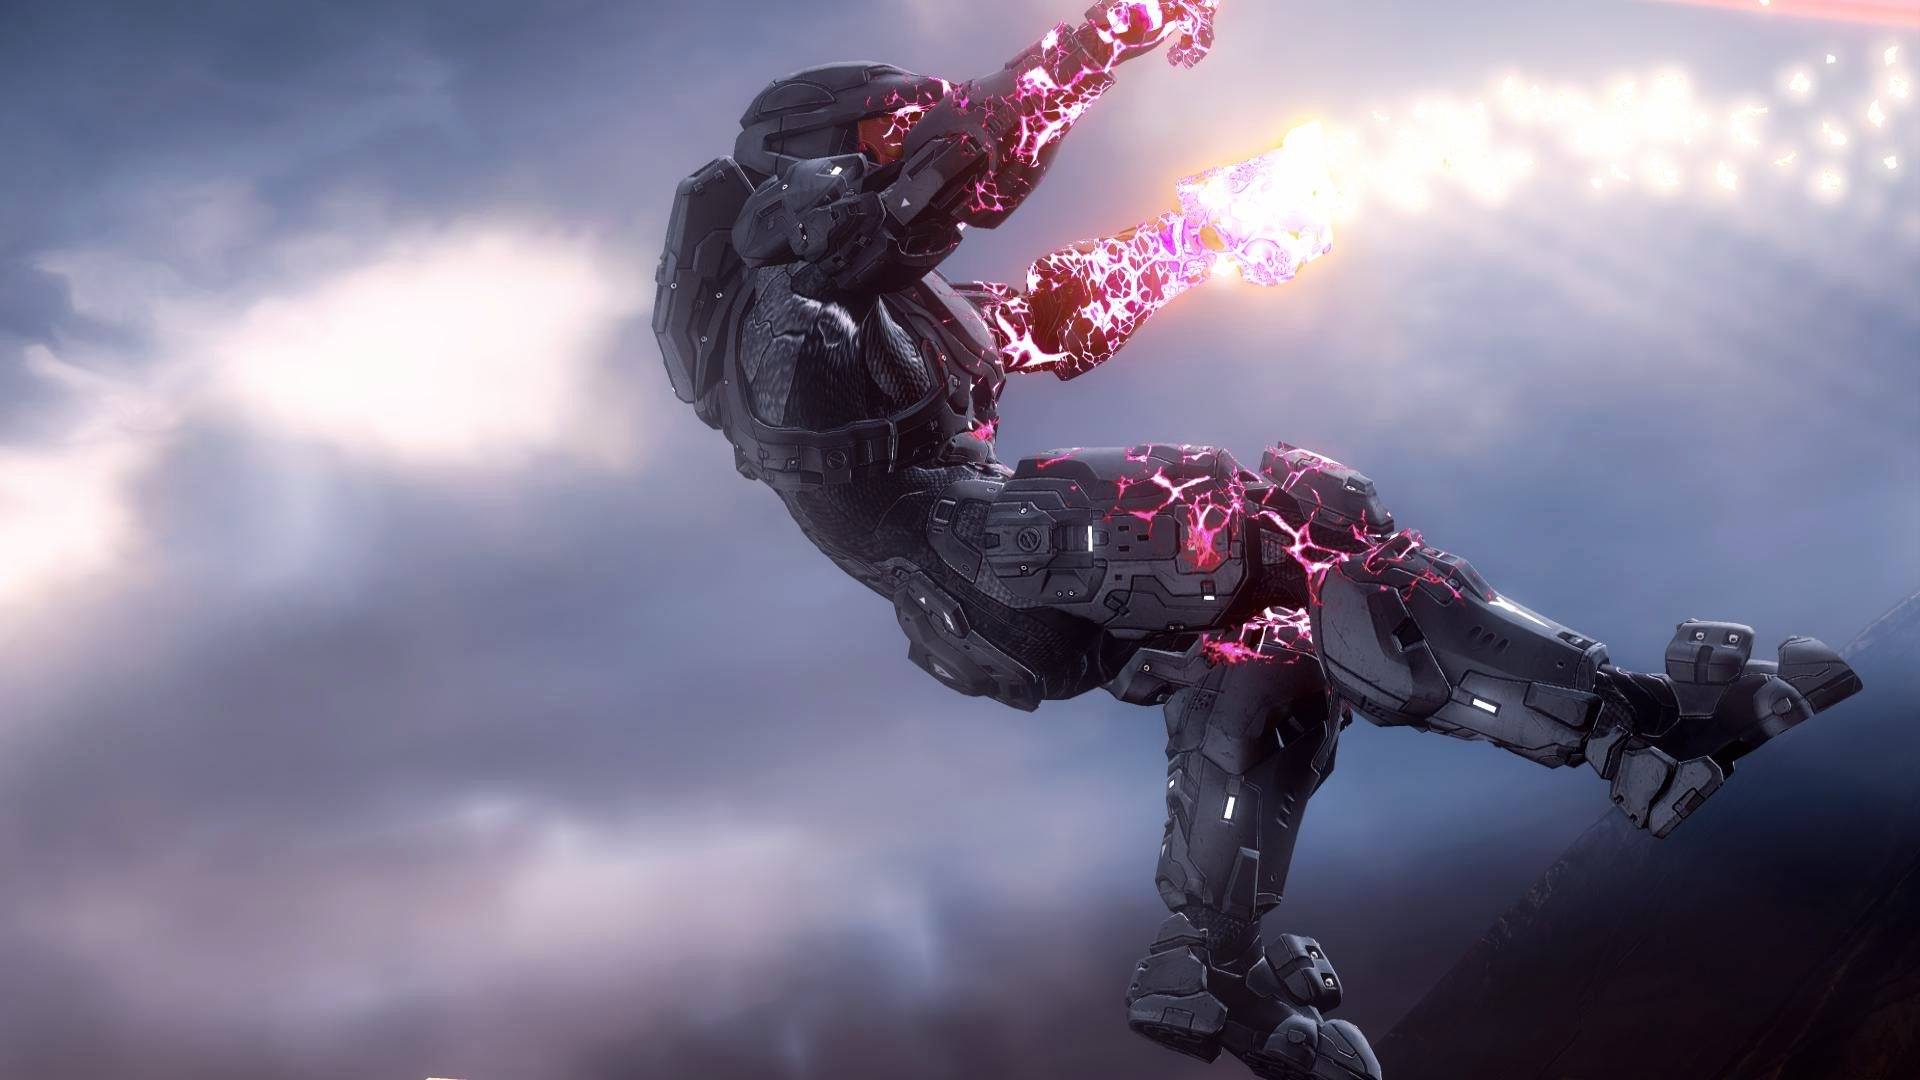 wallpaper free game halo - photo #28